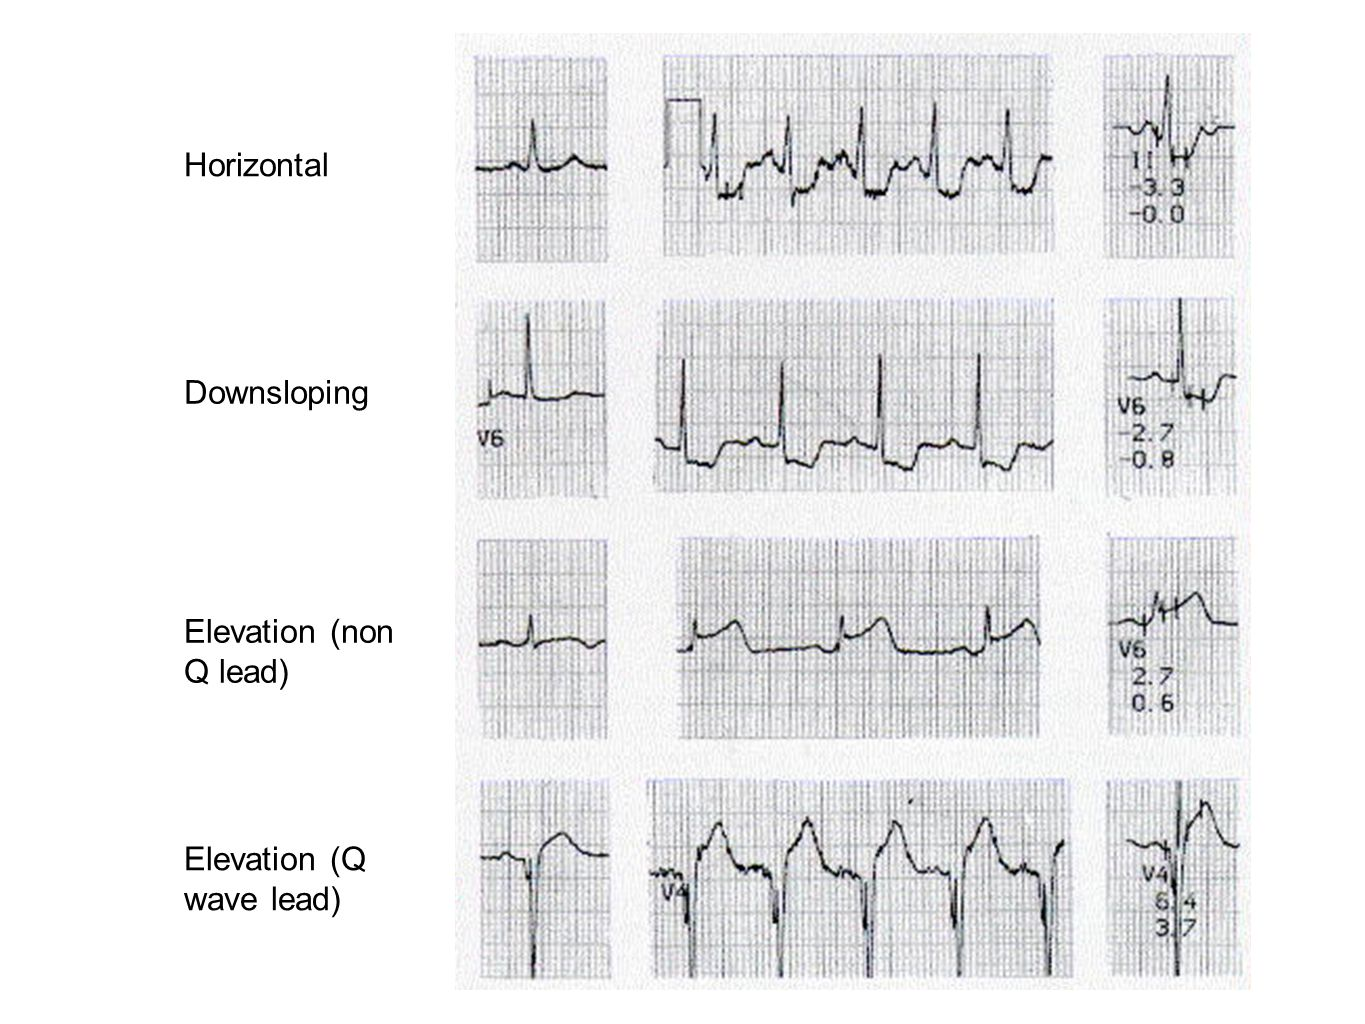 Horizontal Downsloping Elevation (non Q lead) Elevation (Q wave lead)